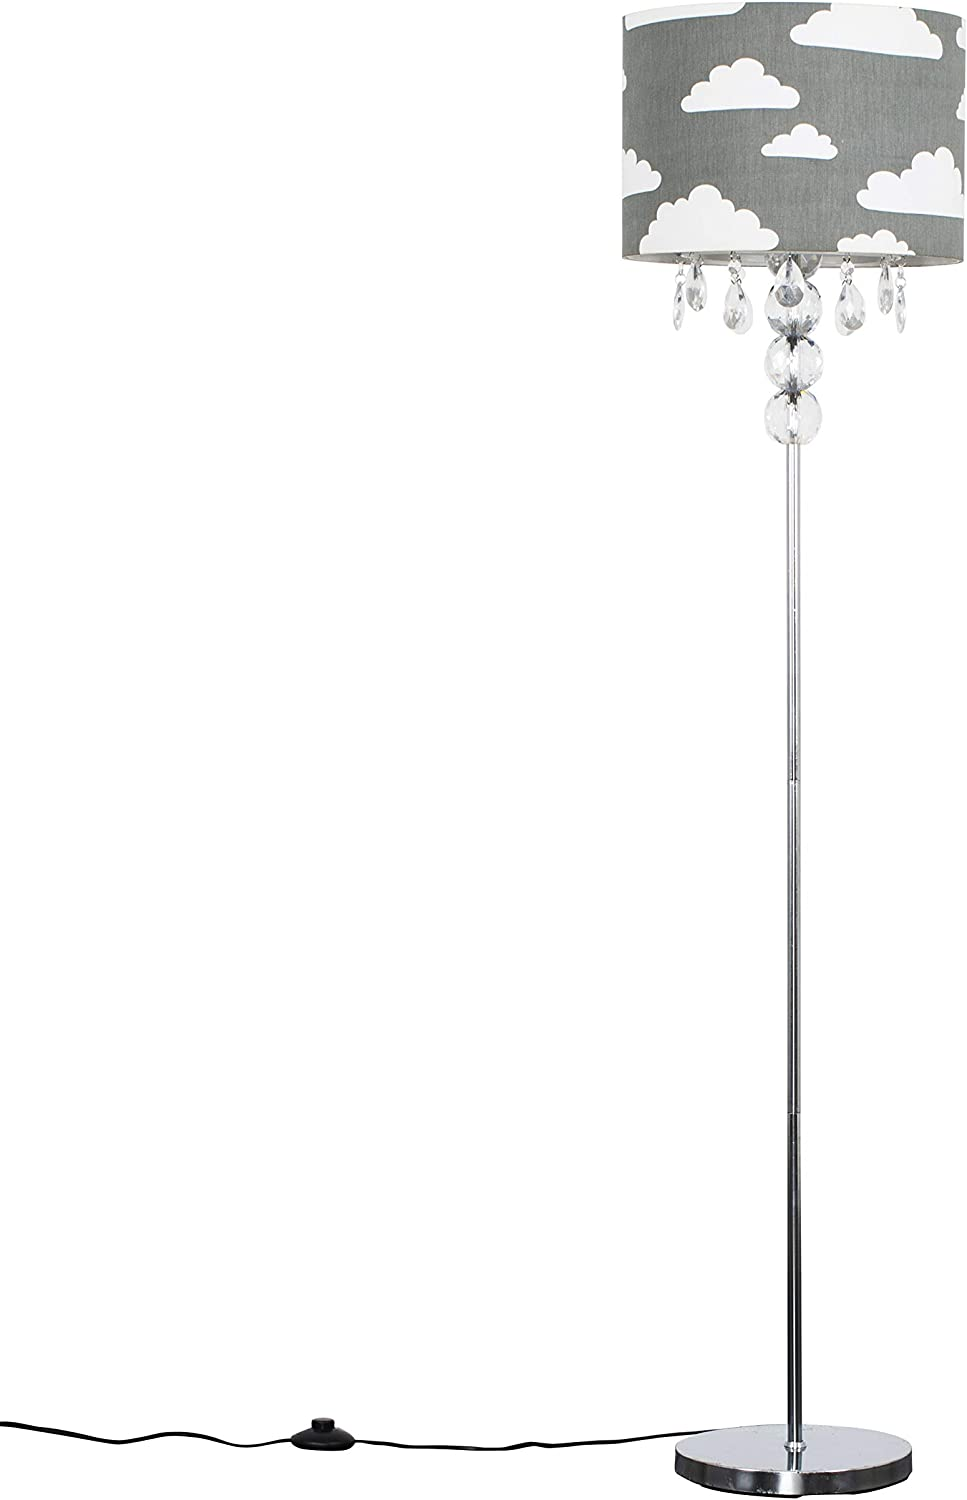 Modern Silver Chrome & Clear Acrylic Ball Floor Lamp with a